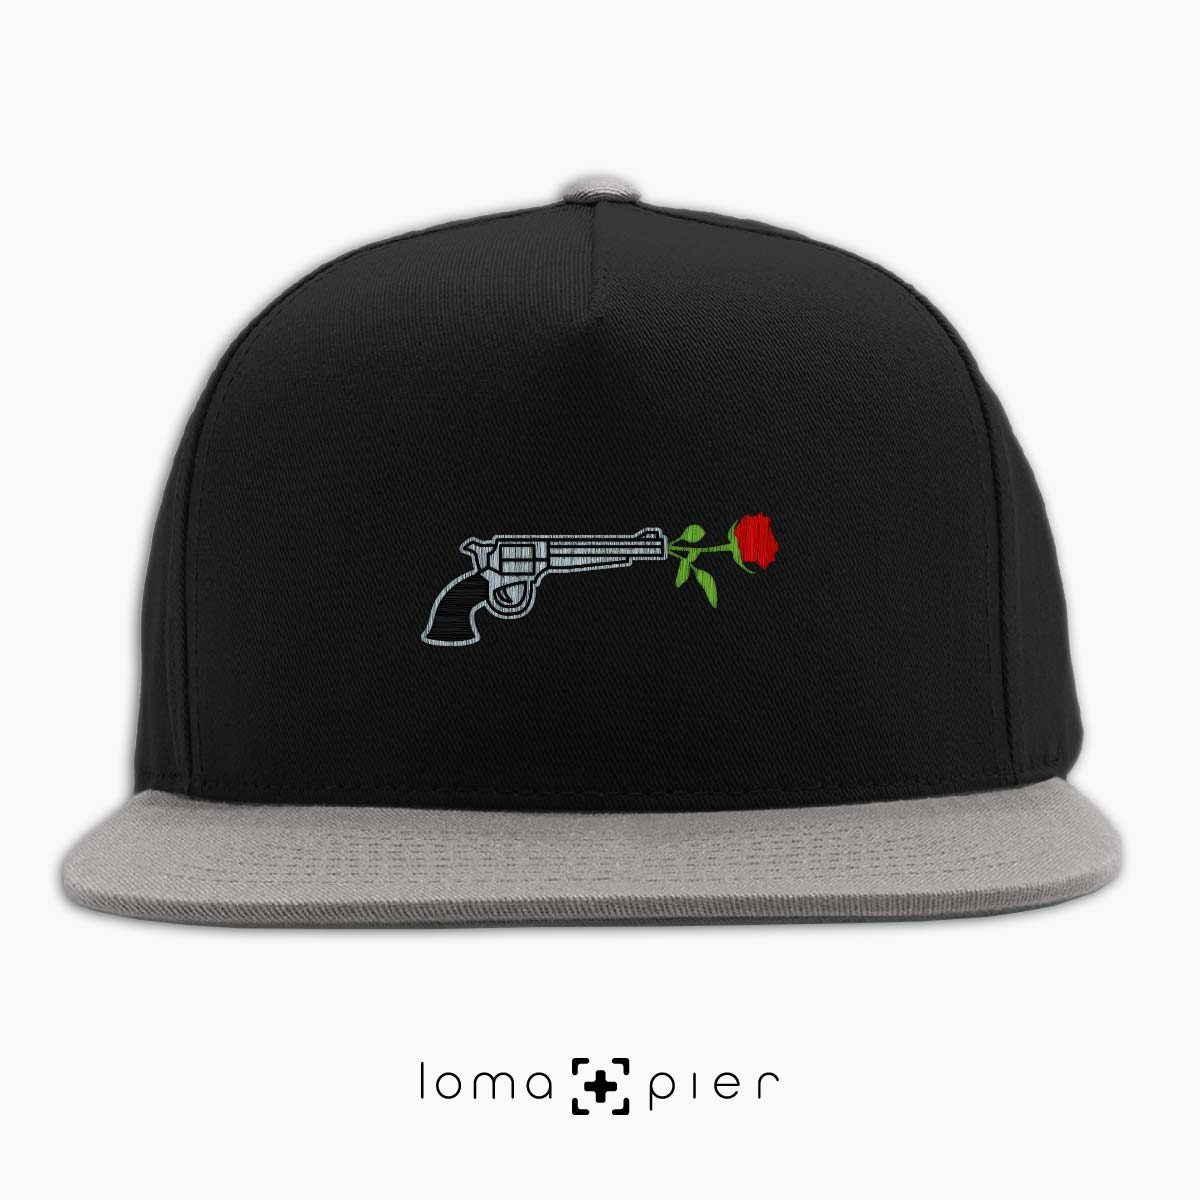 ROSE REVOLVER icon embroidered on a black and grey classic snapback hat with multicolor thread by loma+pier hat store